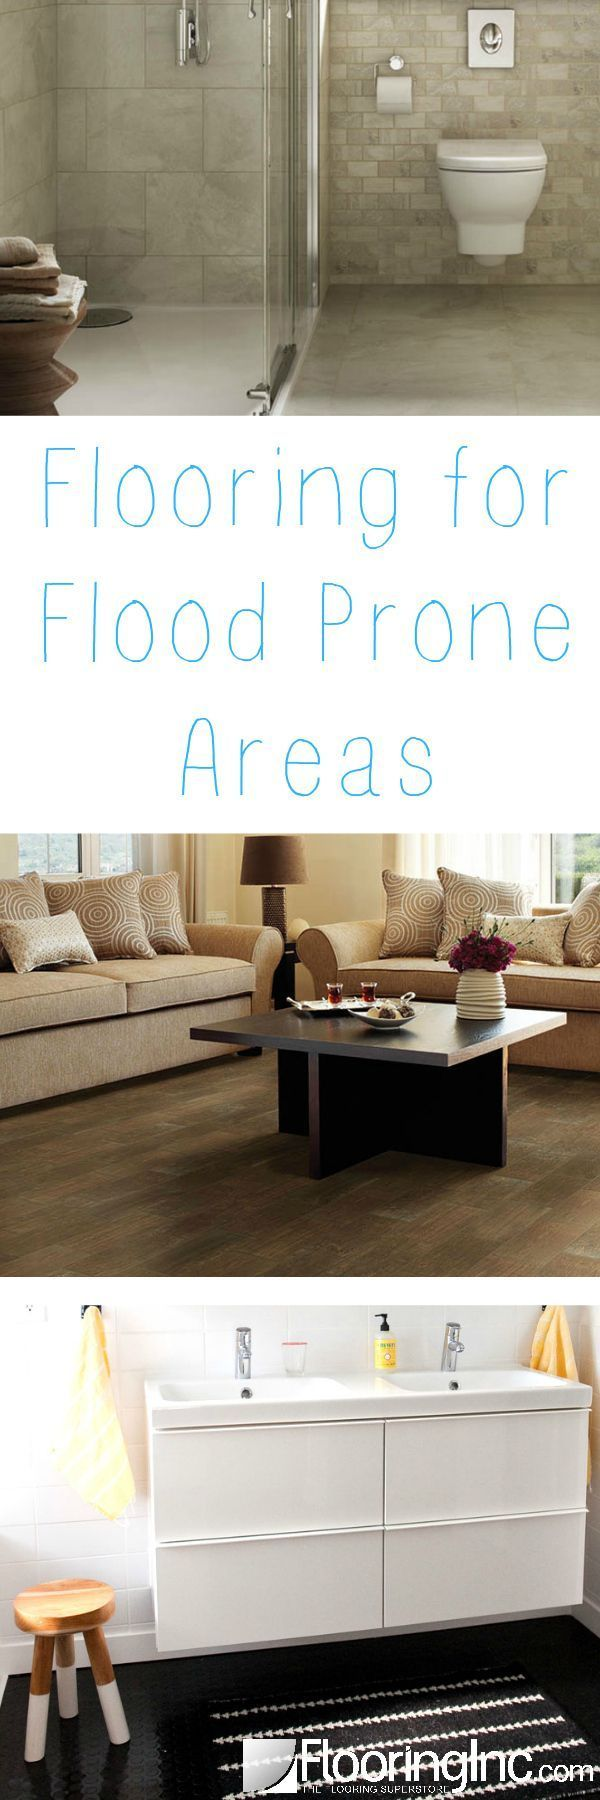 Flooring for FloodProne Areas Home gym flooring